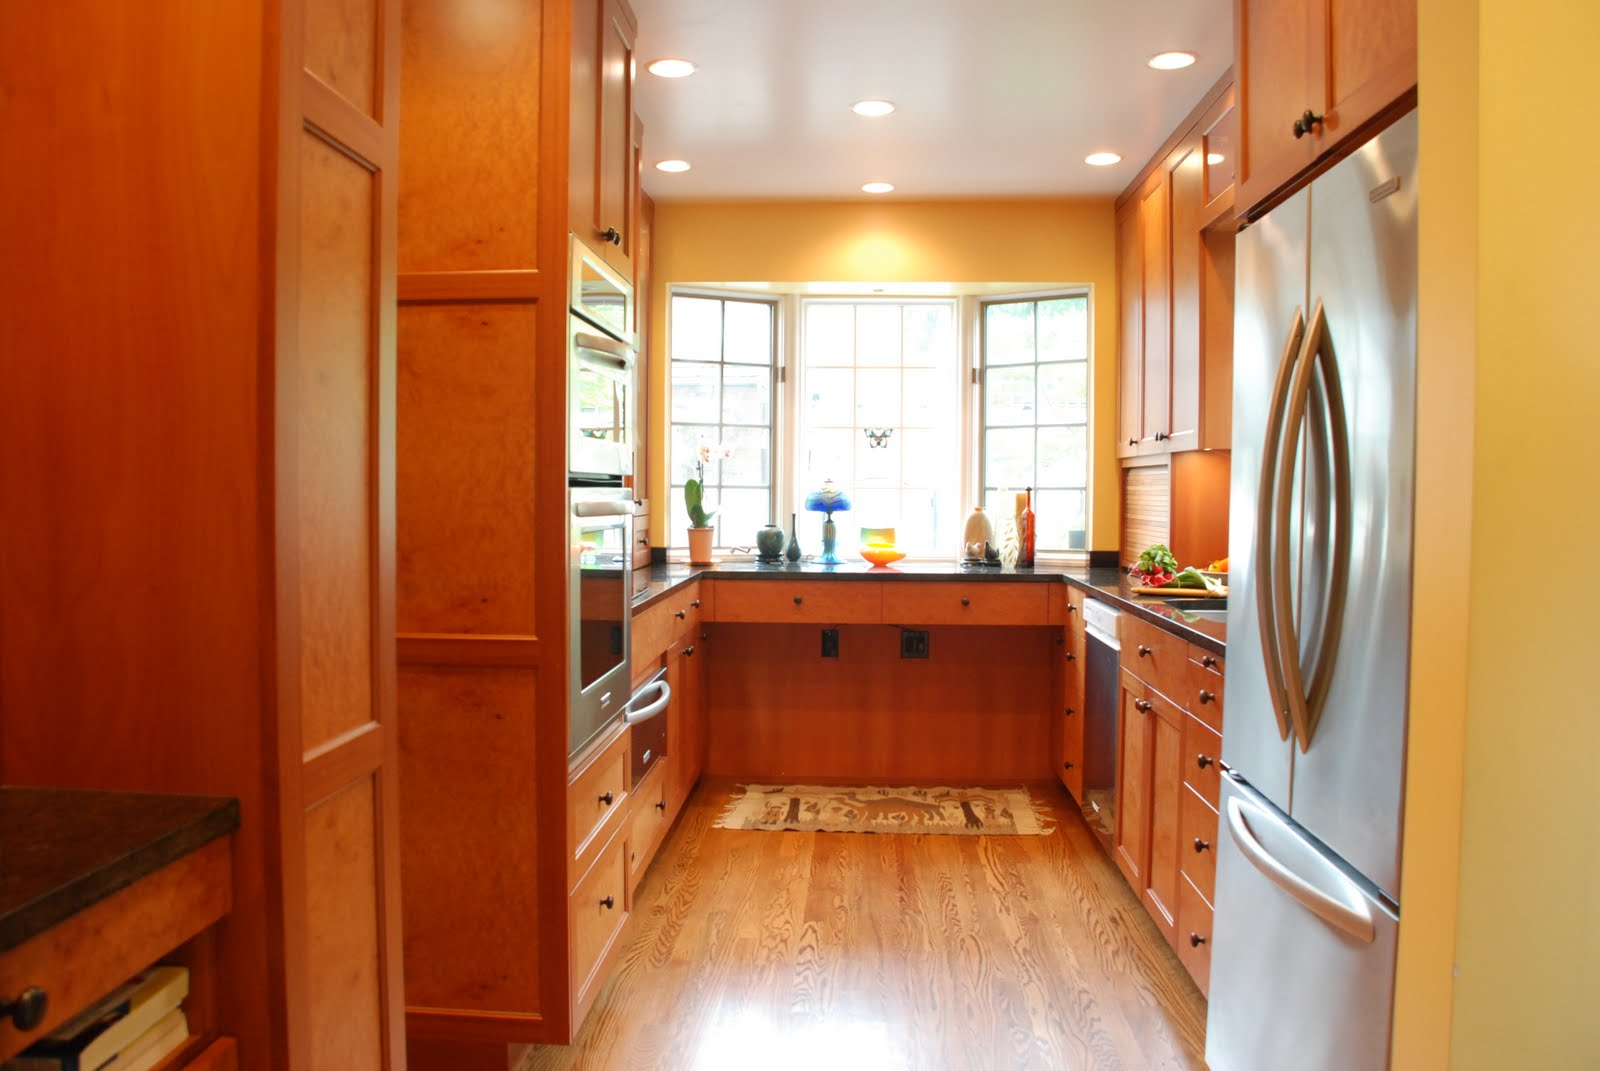 Narrow Galley Kitchen Vision Woodworks Inc Galley Kitchens Ideas For